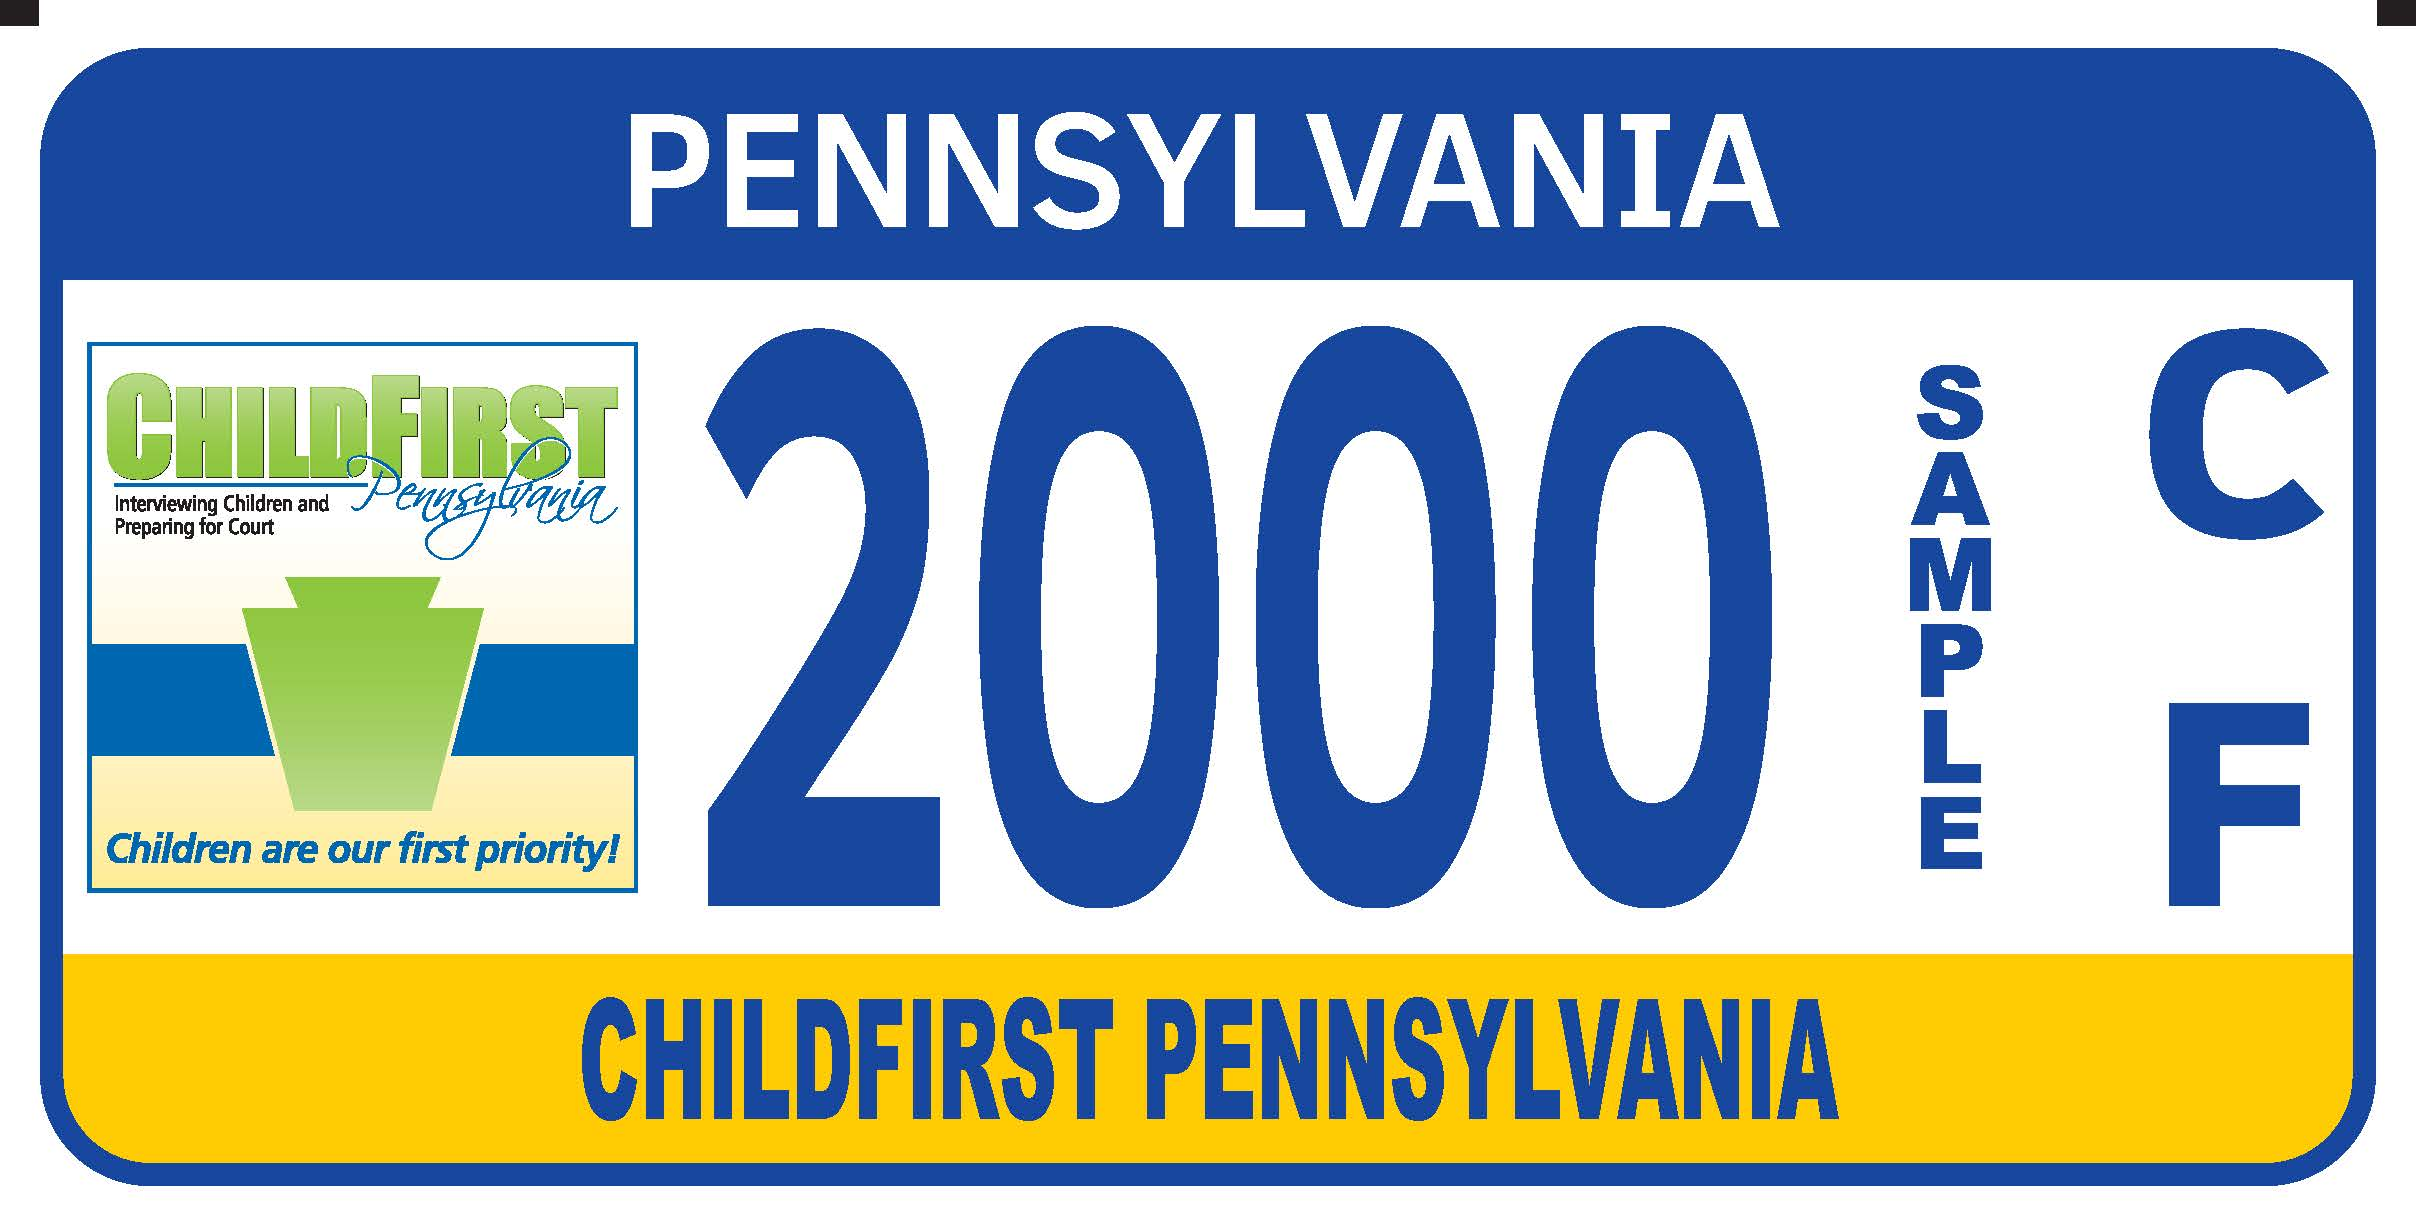 ChildFirst Pennsylvania